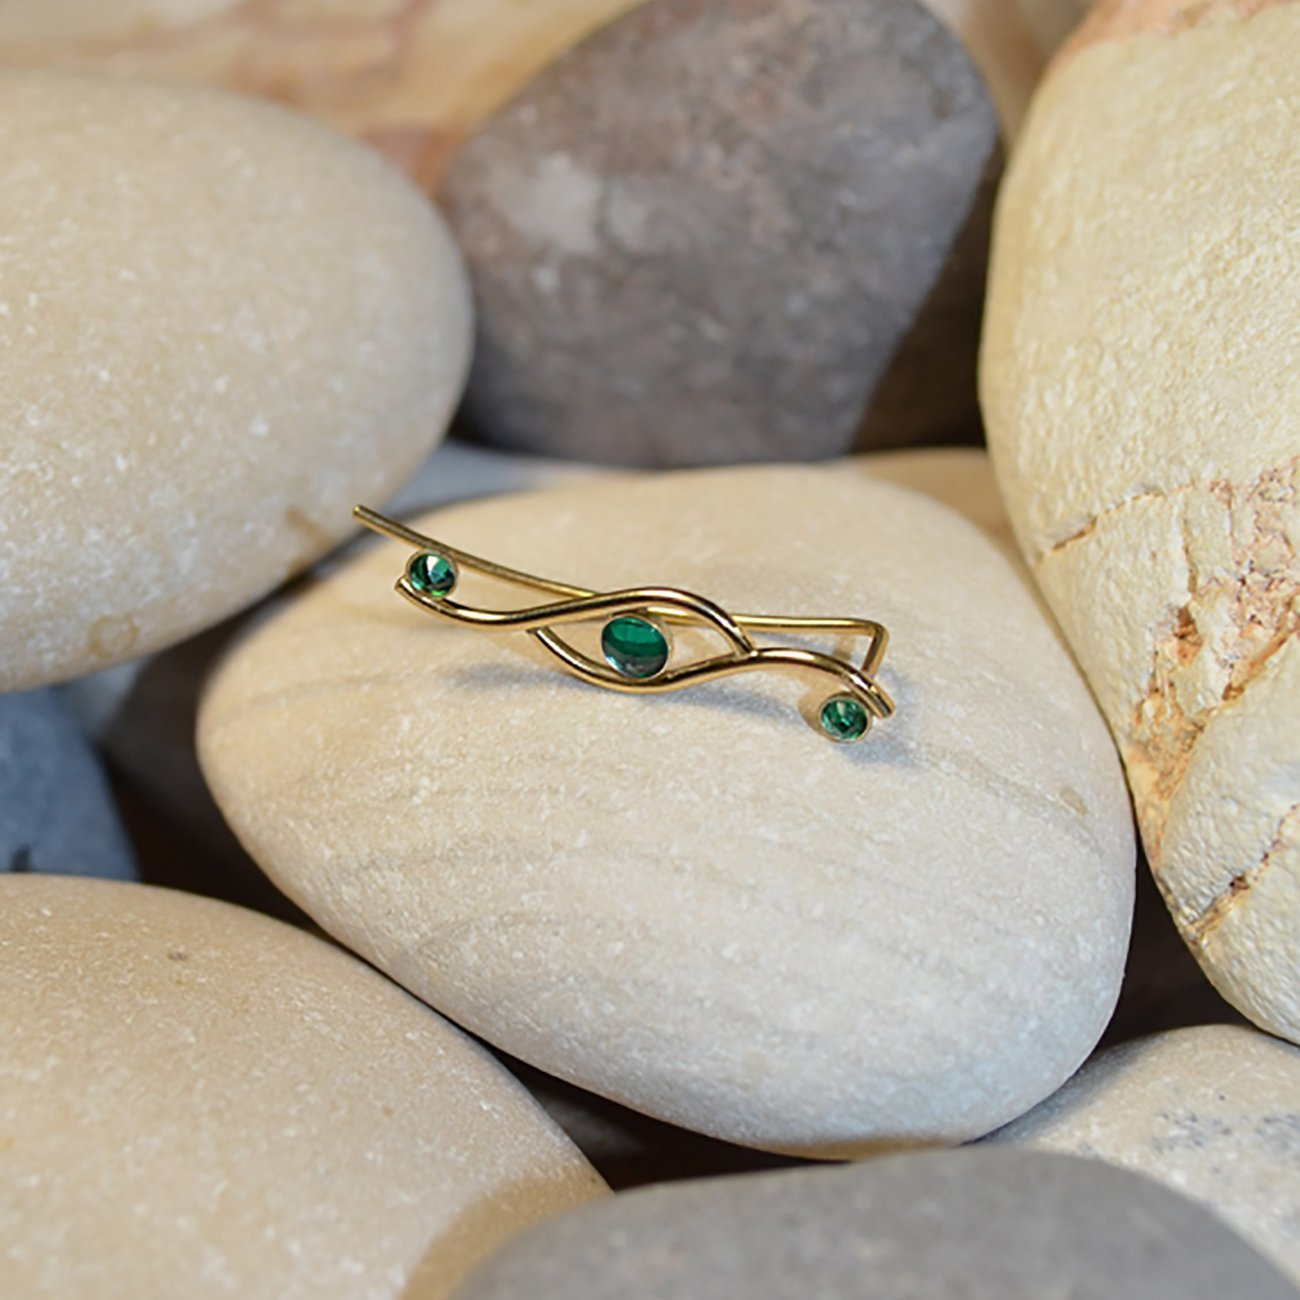 Emerald EAR CLIMBER Earring//Gold Ear Cuff - Pin Earrings - Ear Wrap - Bar Studs - Earcuff - Post Stud Earrings